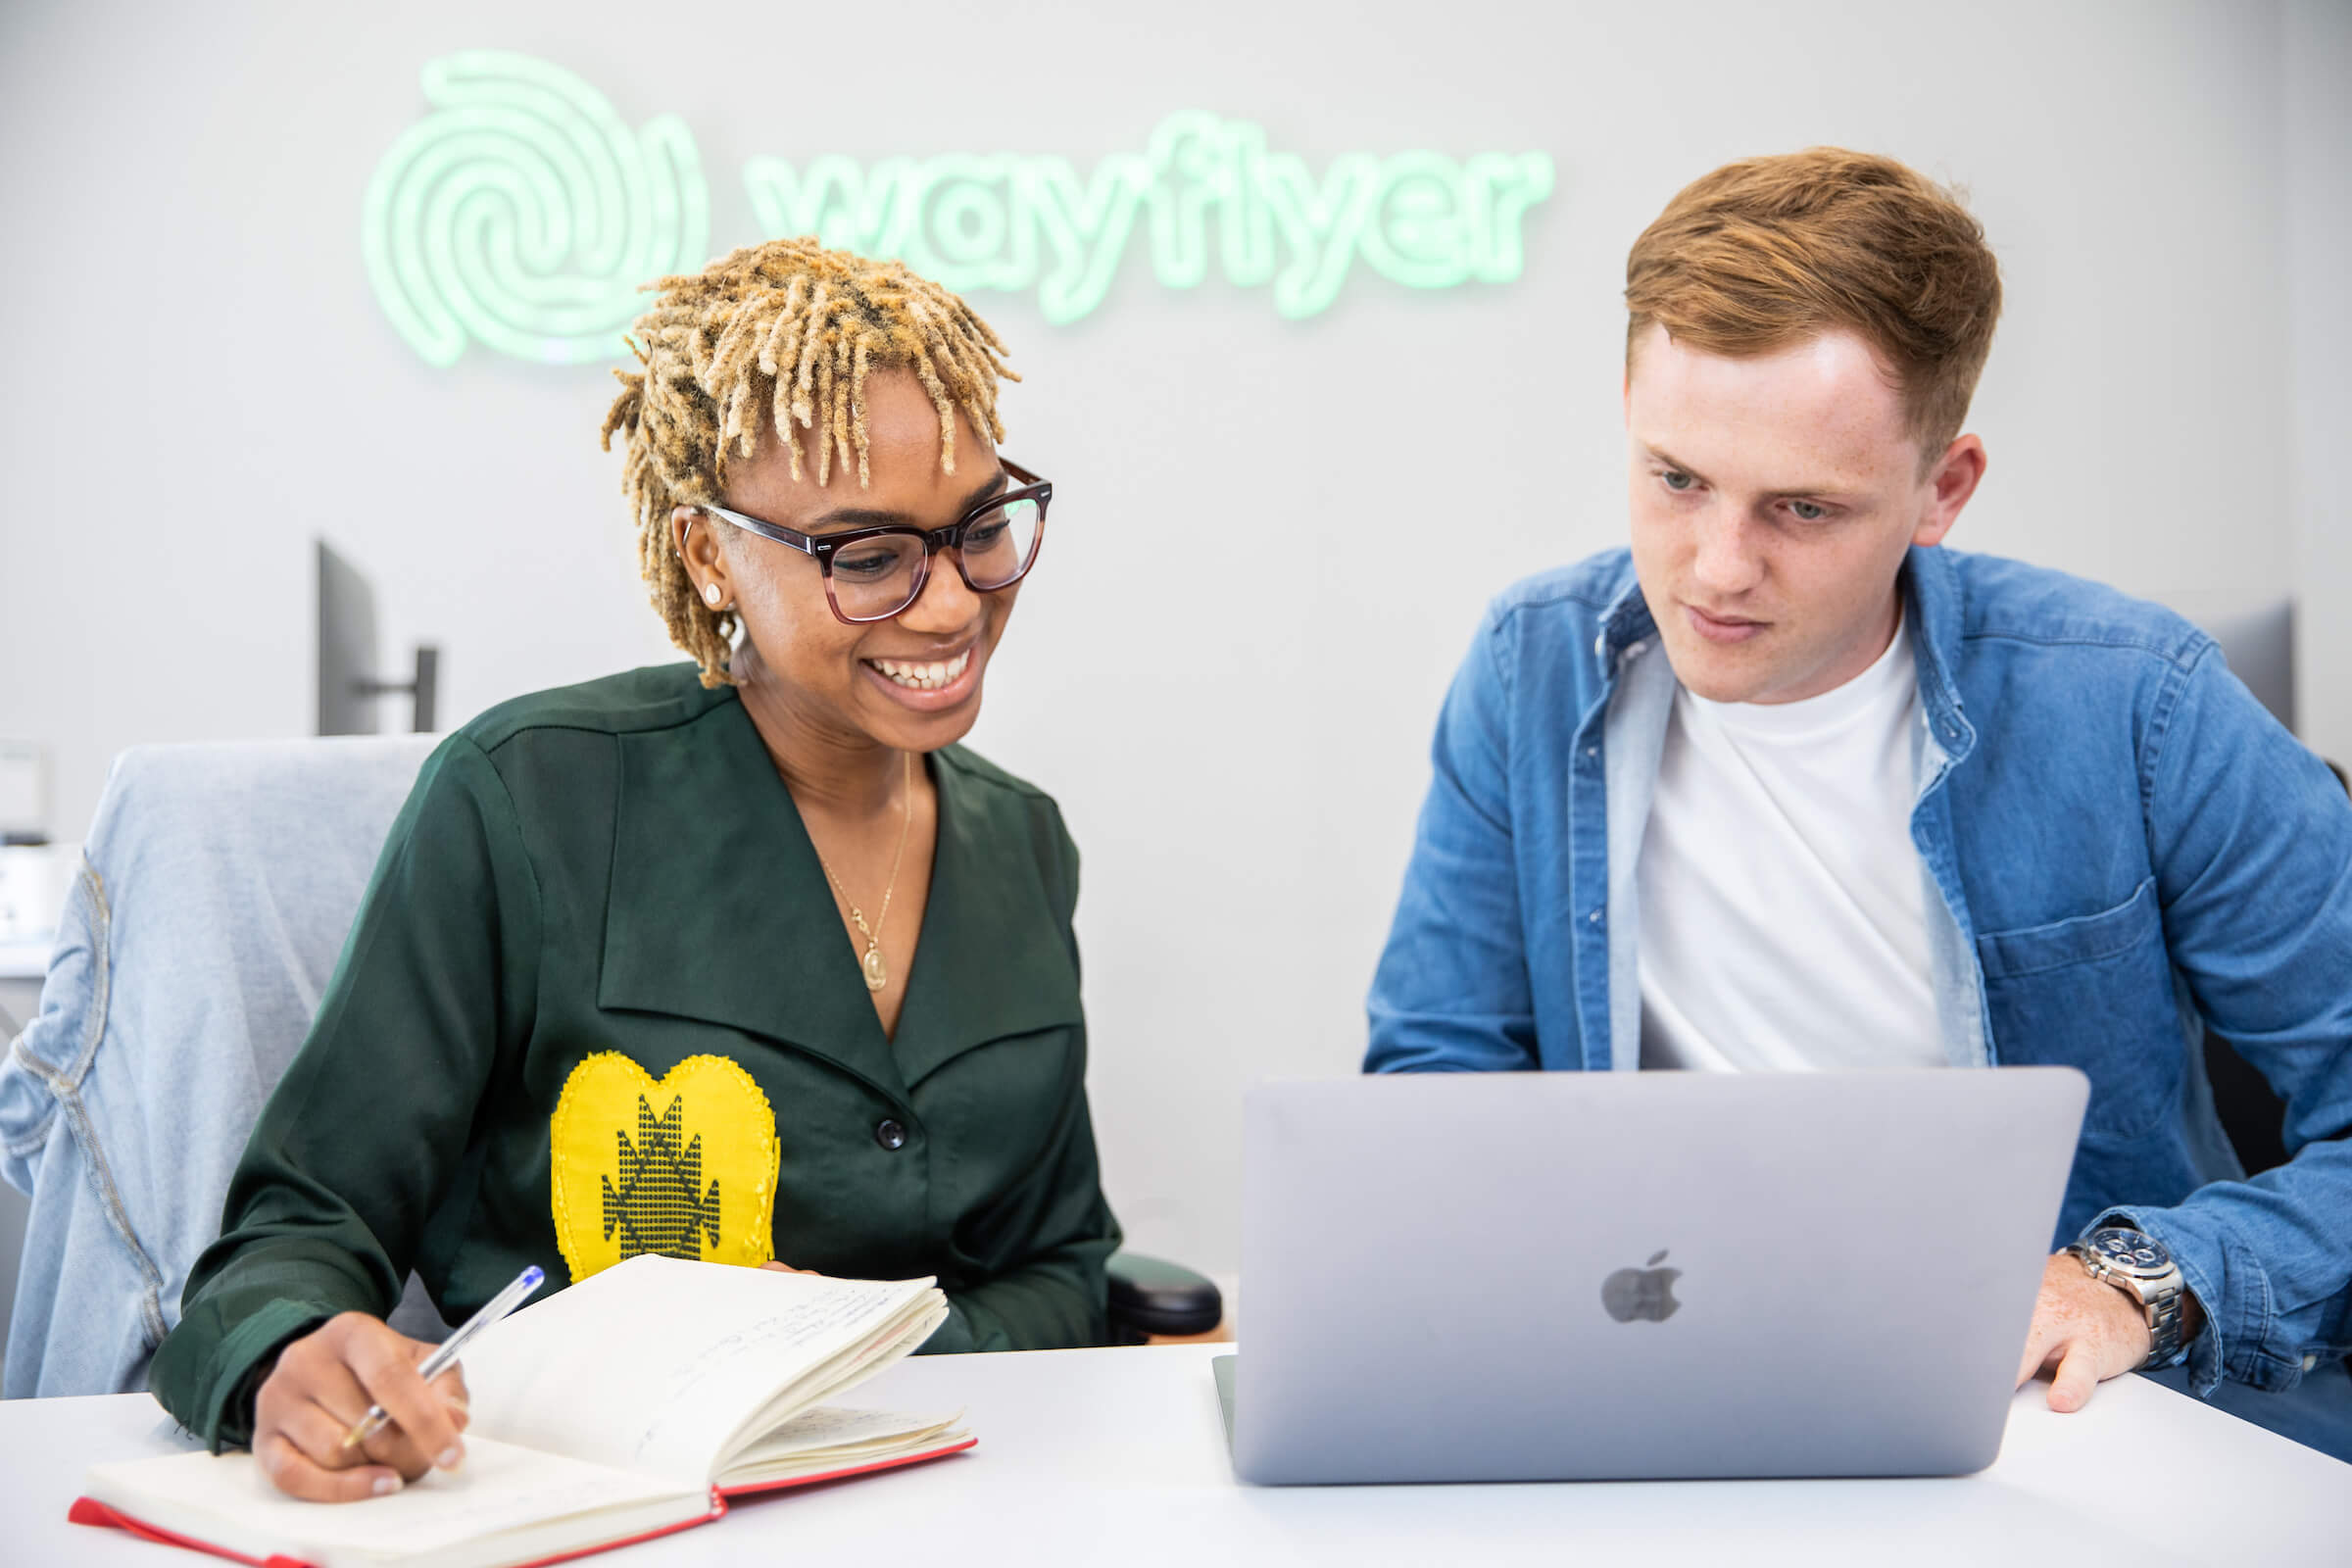 Wayflyer are hiring. Want to join our team?